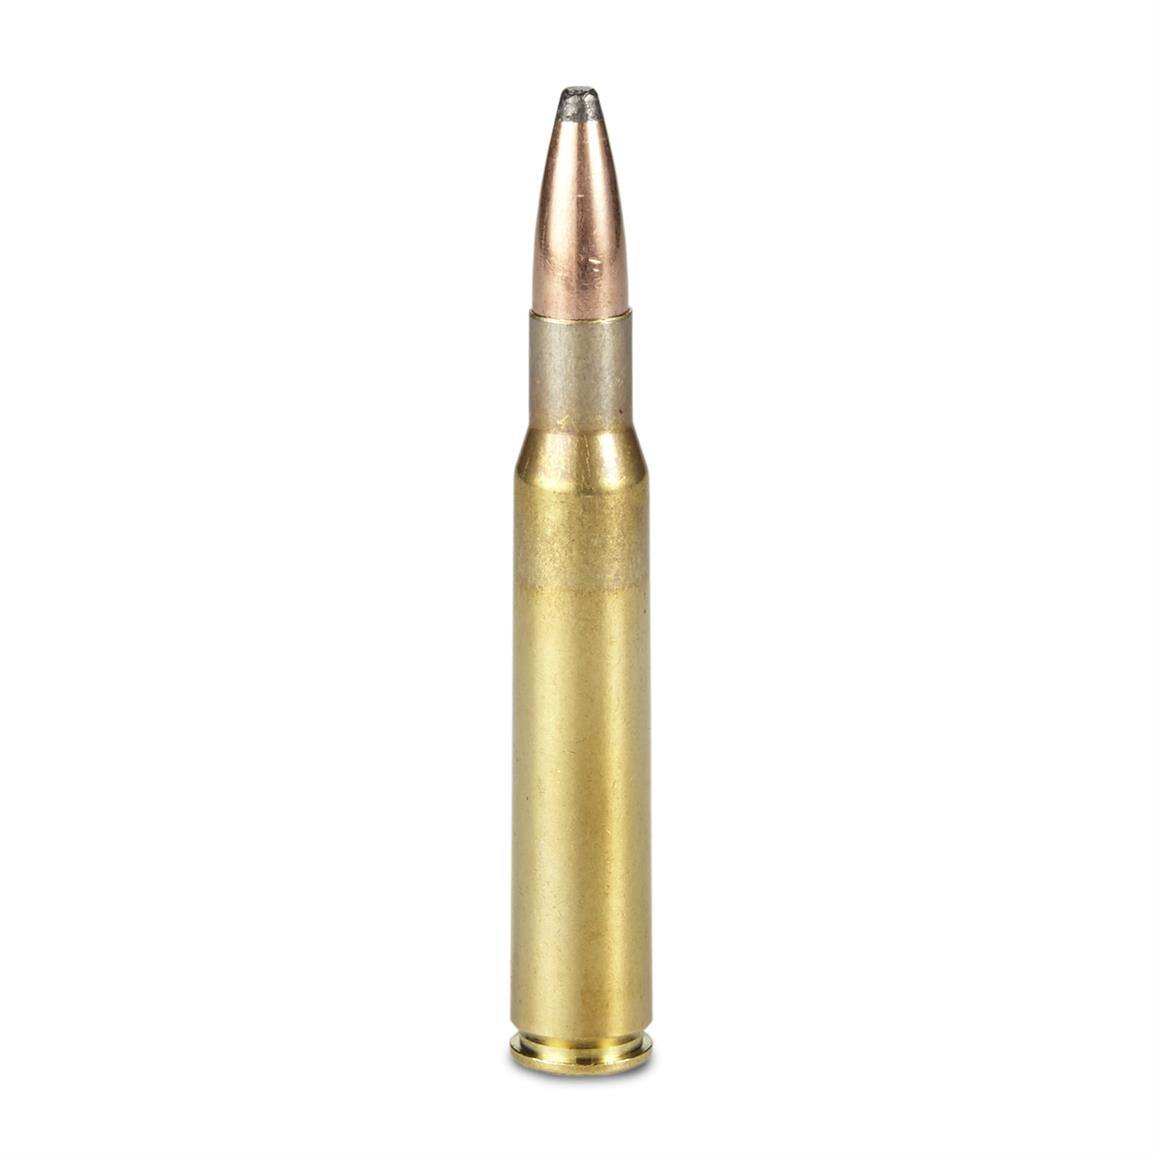 Soft point bullet